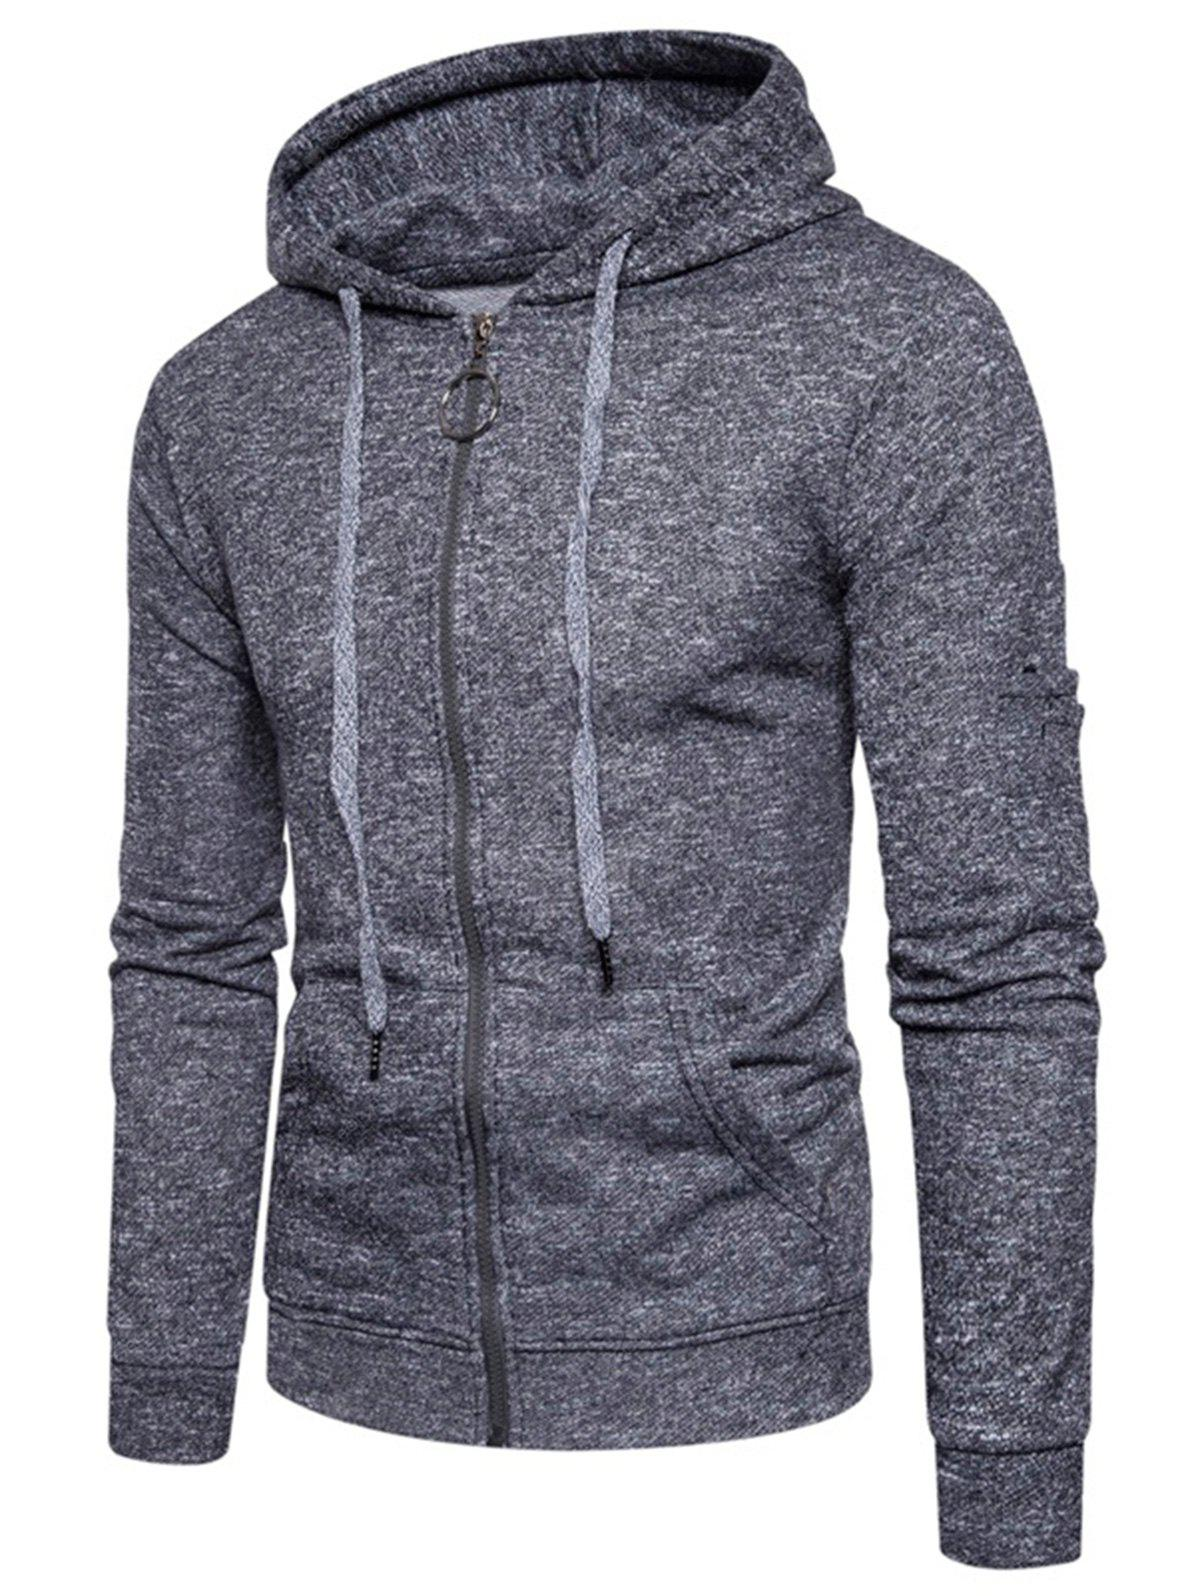 Pouch Pocket Cotton Blends Zip Up Hoodie